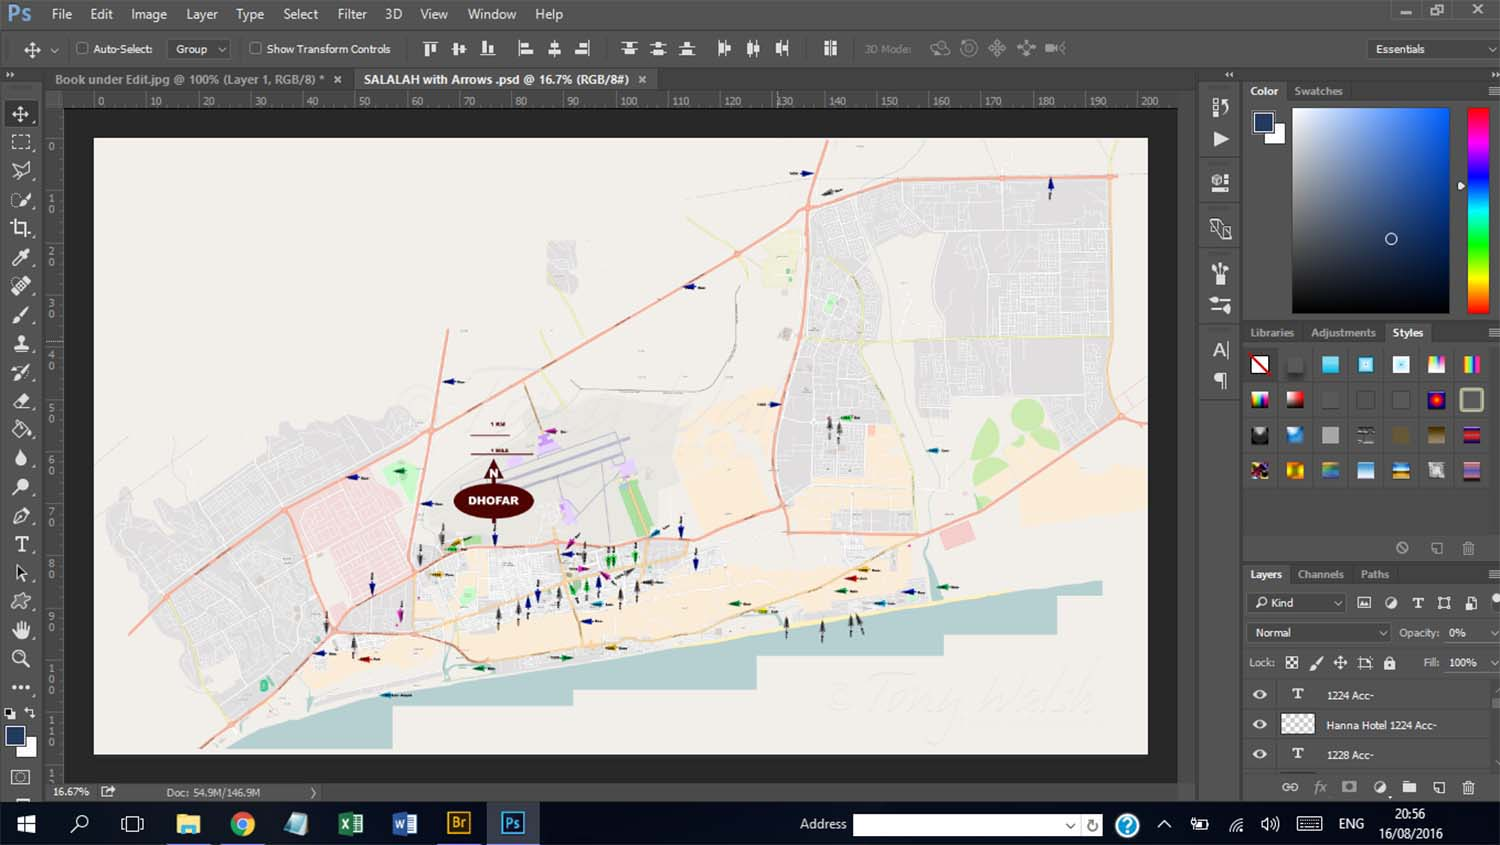 Salalah Map under work